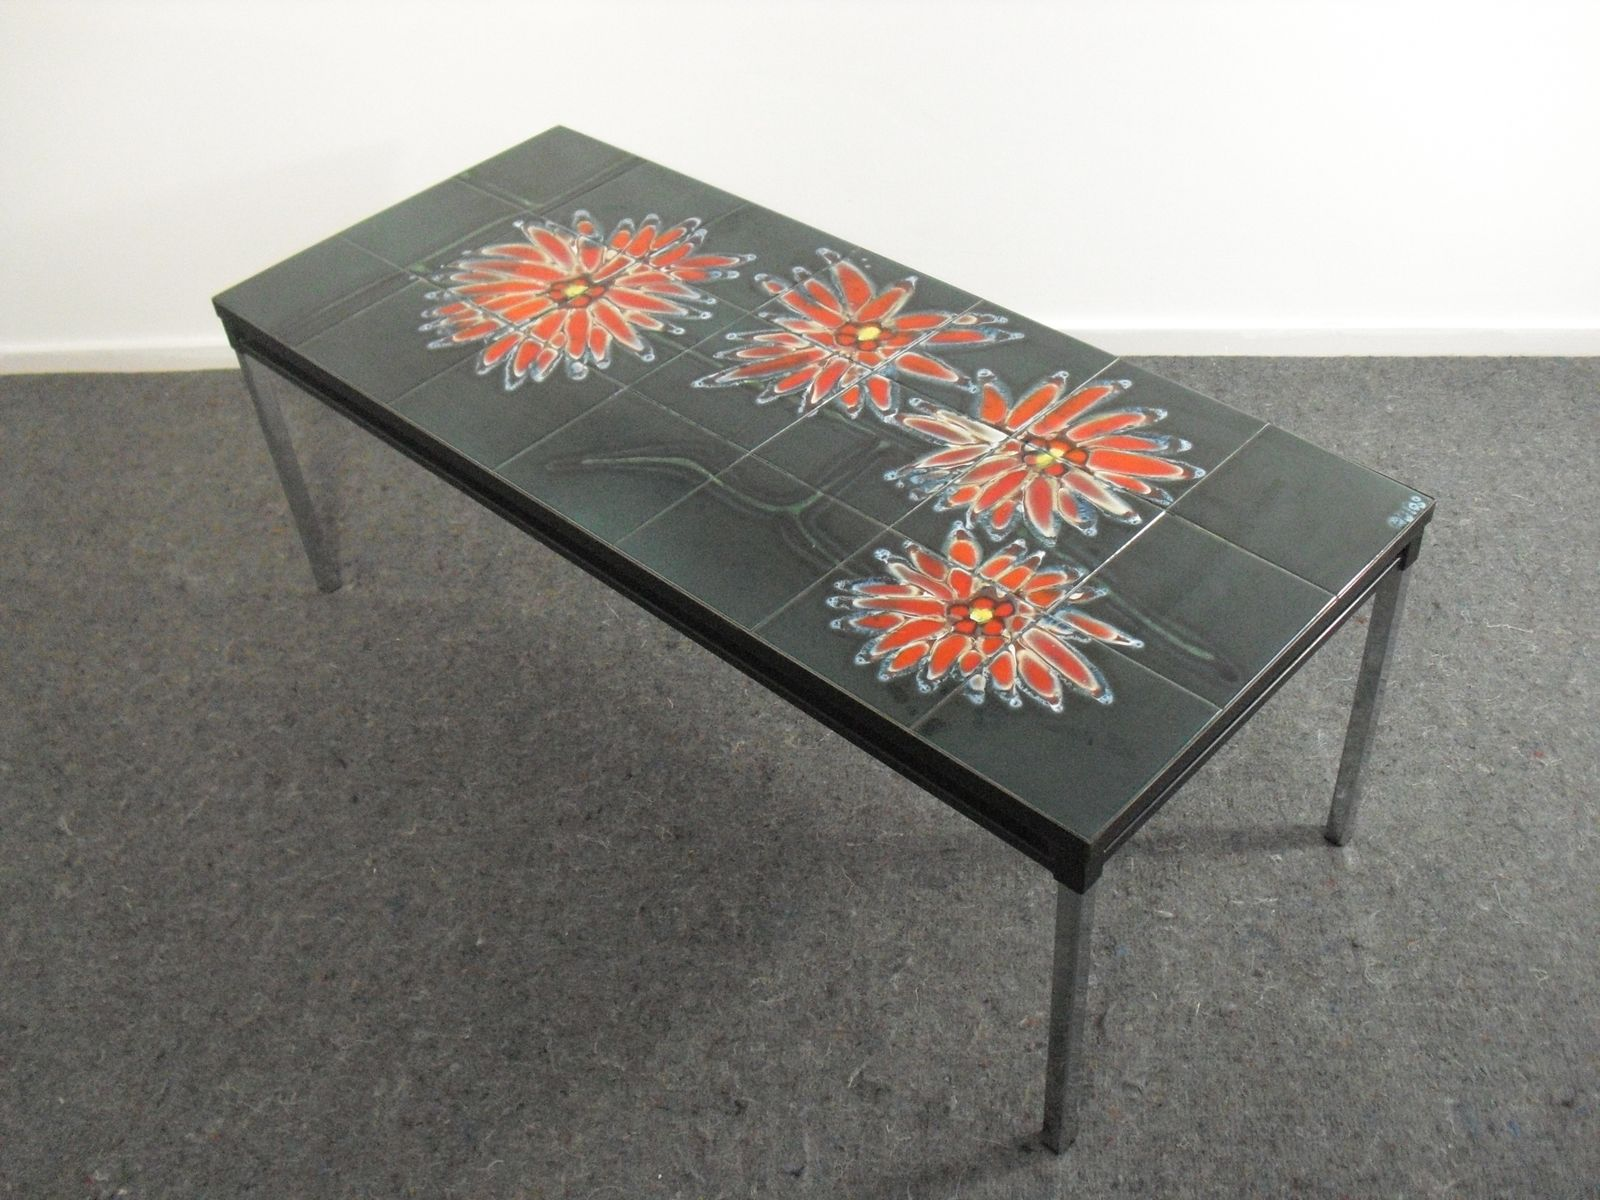 Vintage ceramic tile coffee table by adri 1960s for sale at pamono dailygadgetfo Images